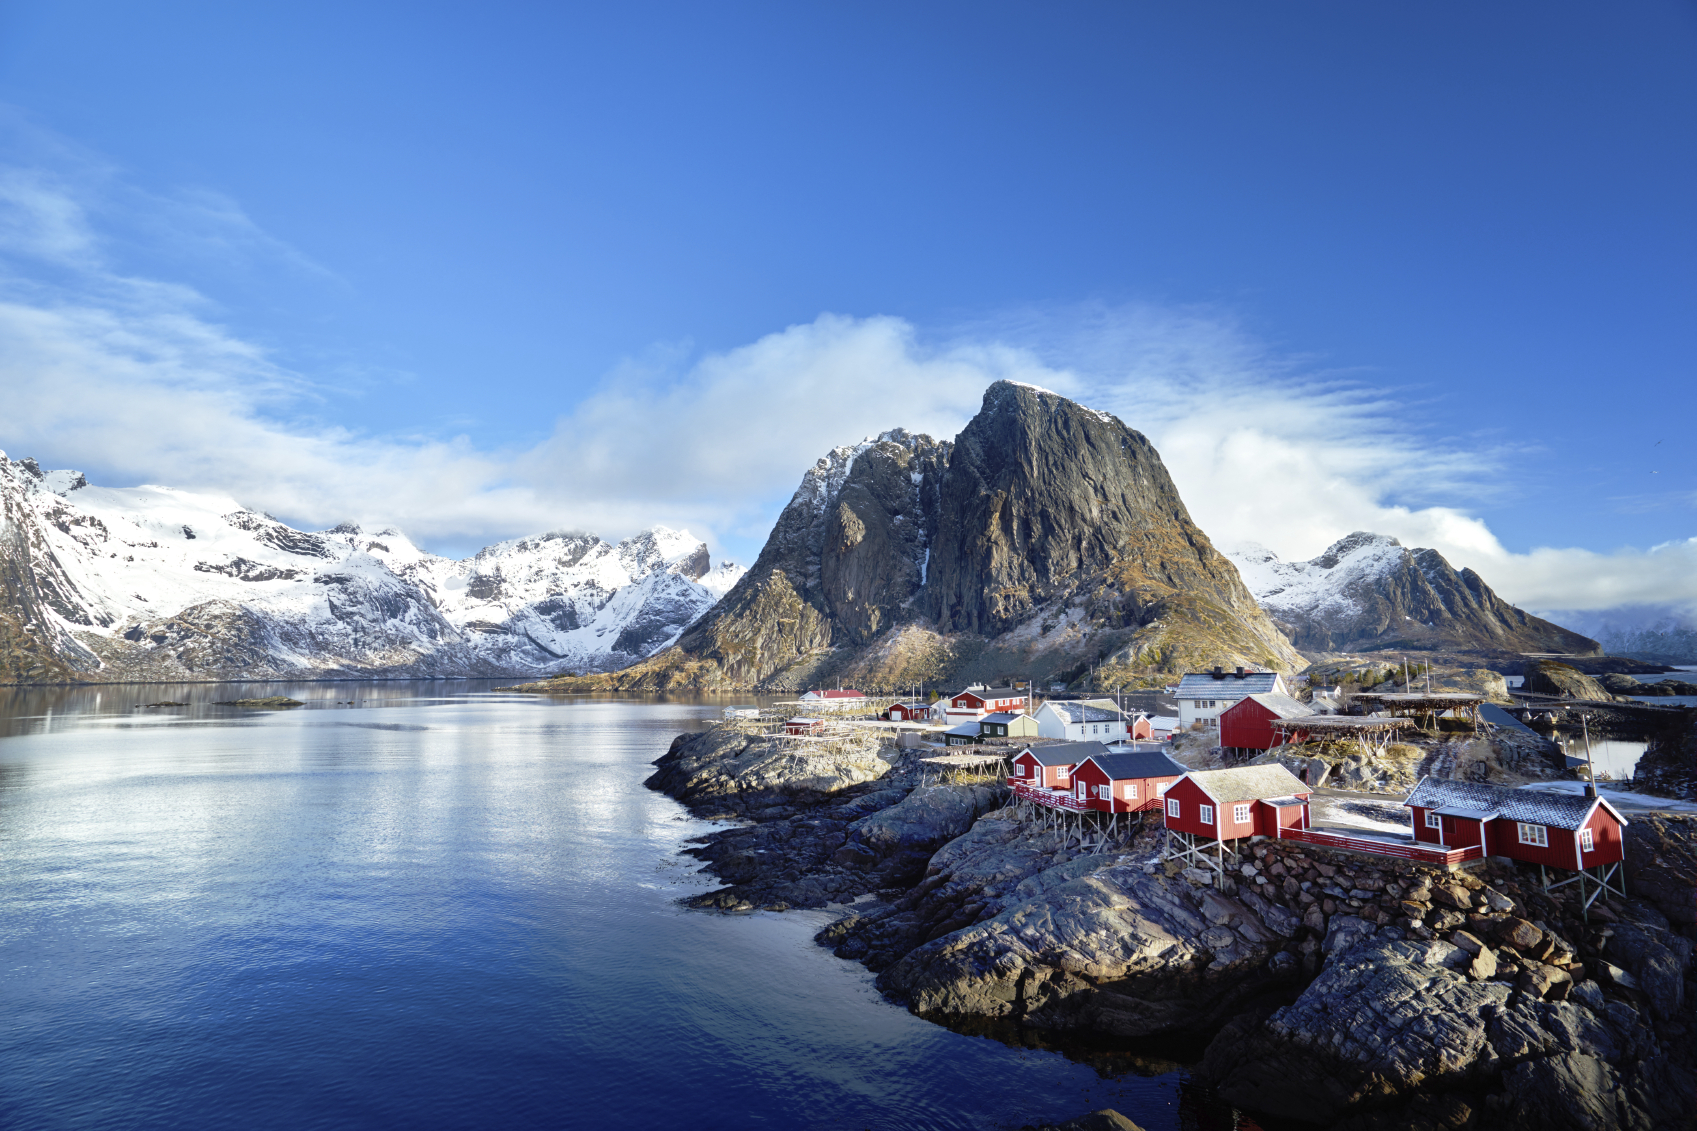 The dramatic landscapes of Norway